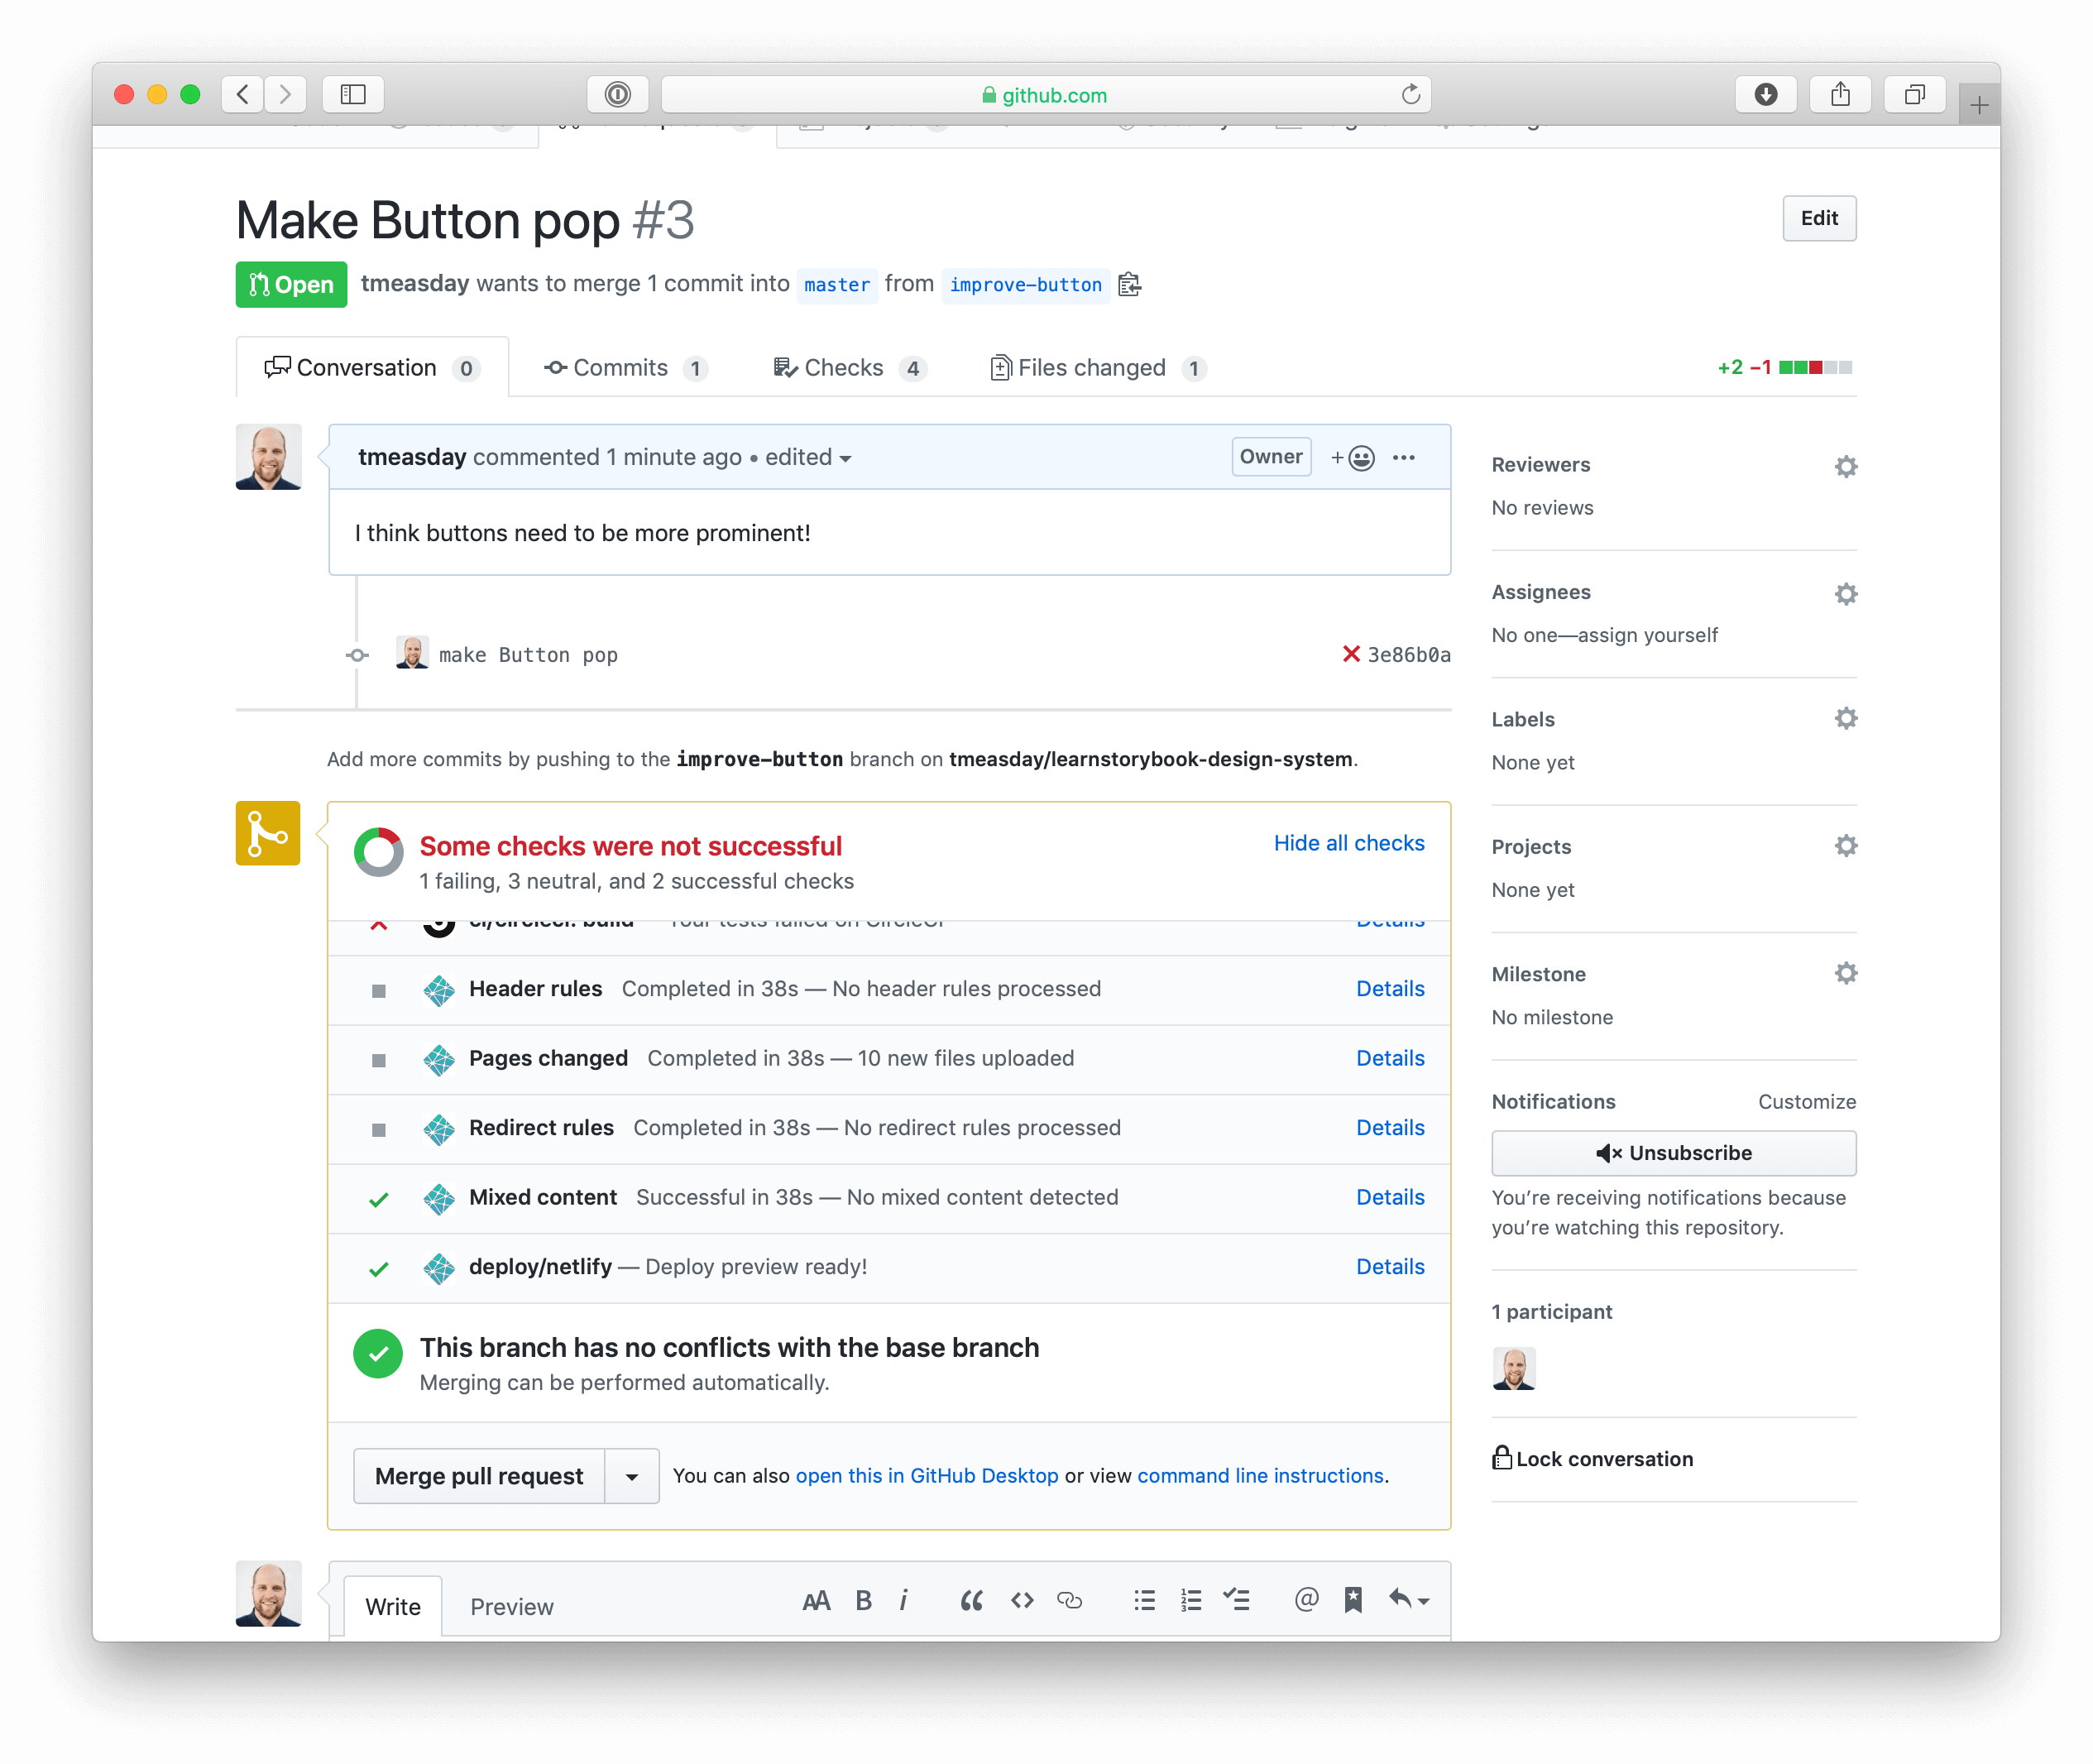 Created a PR in GitHub